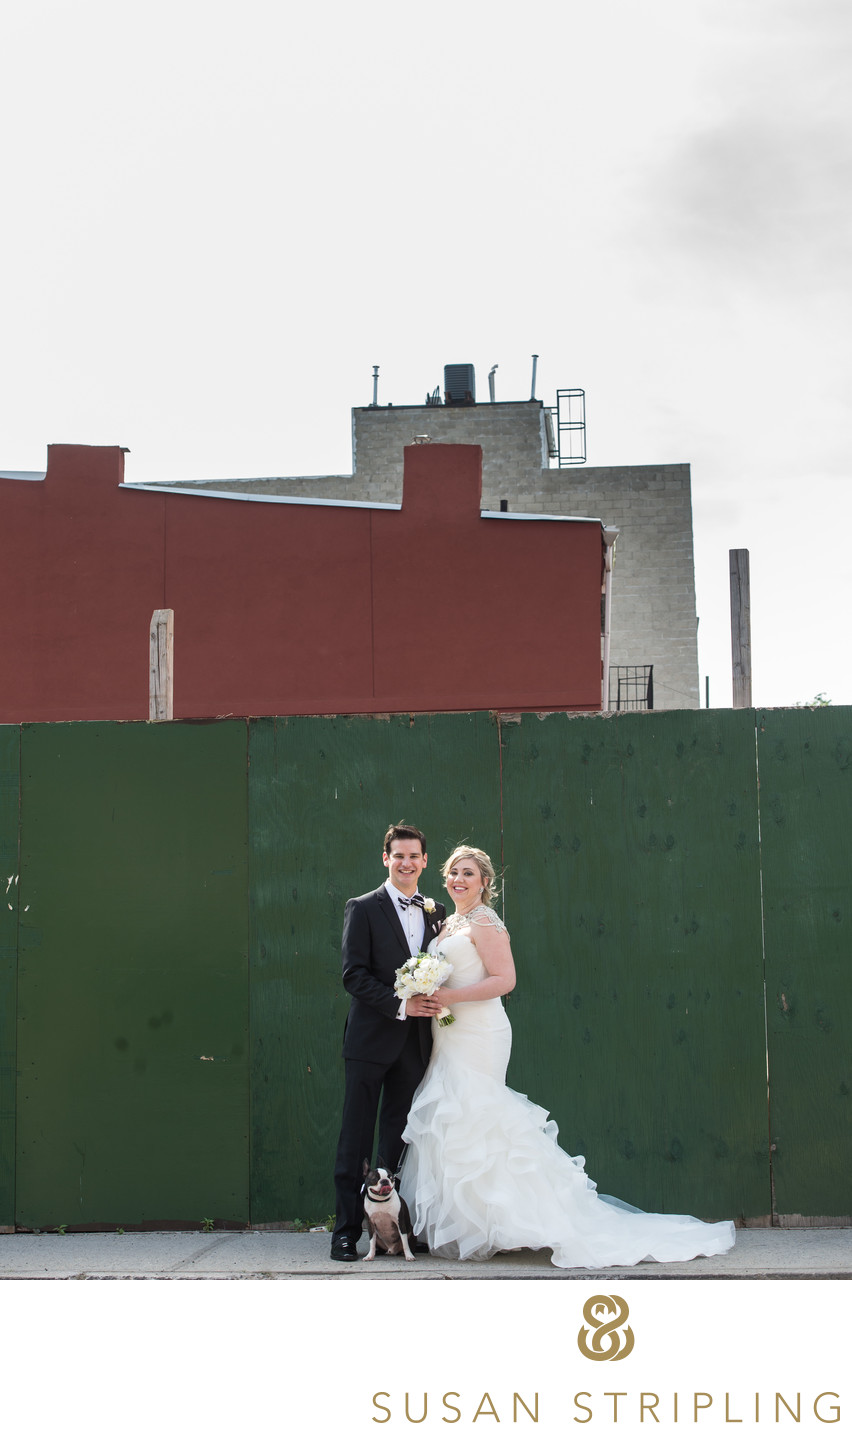 Gowanus Wedding Photo Locations 501 Union